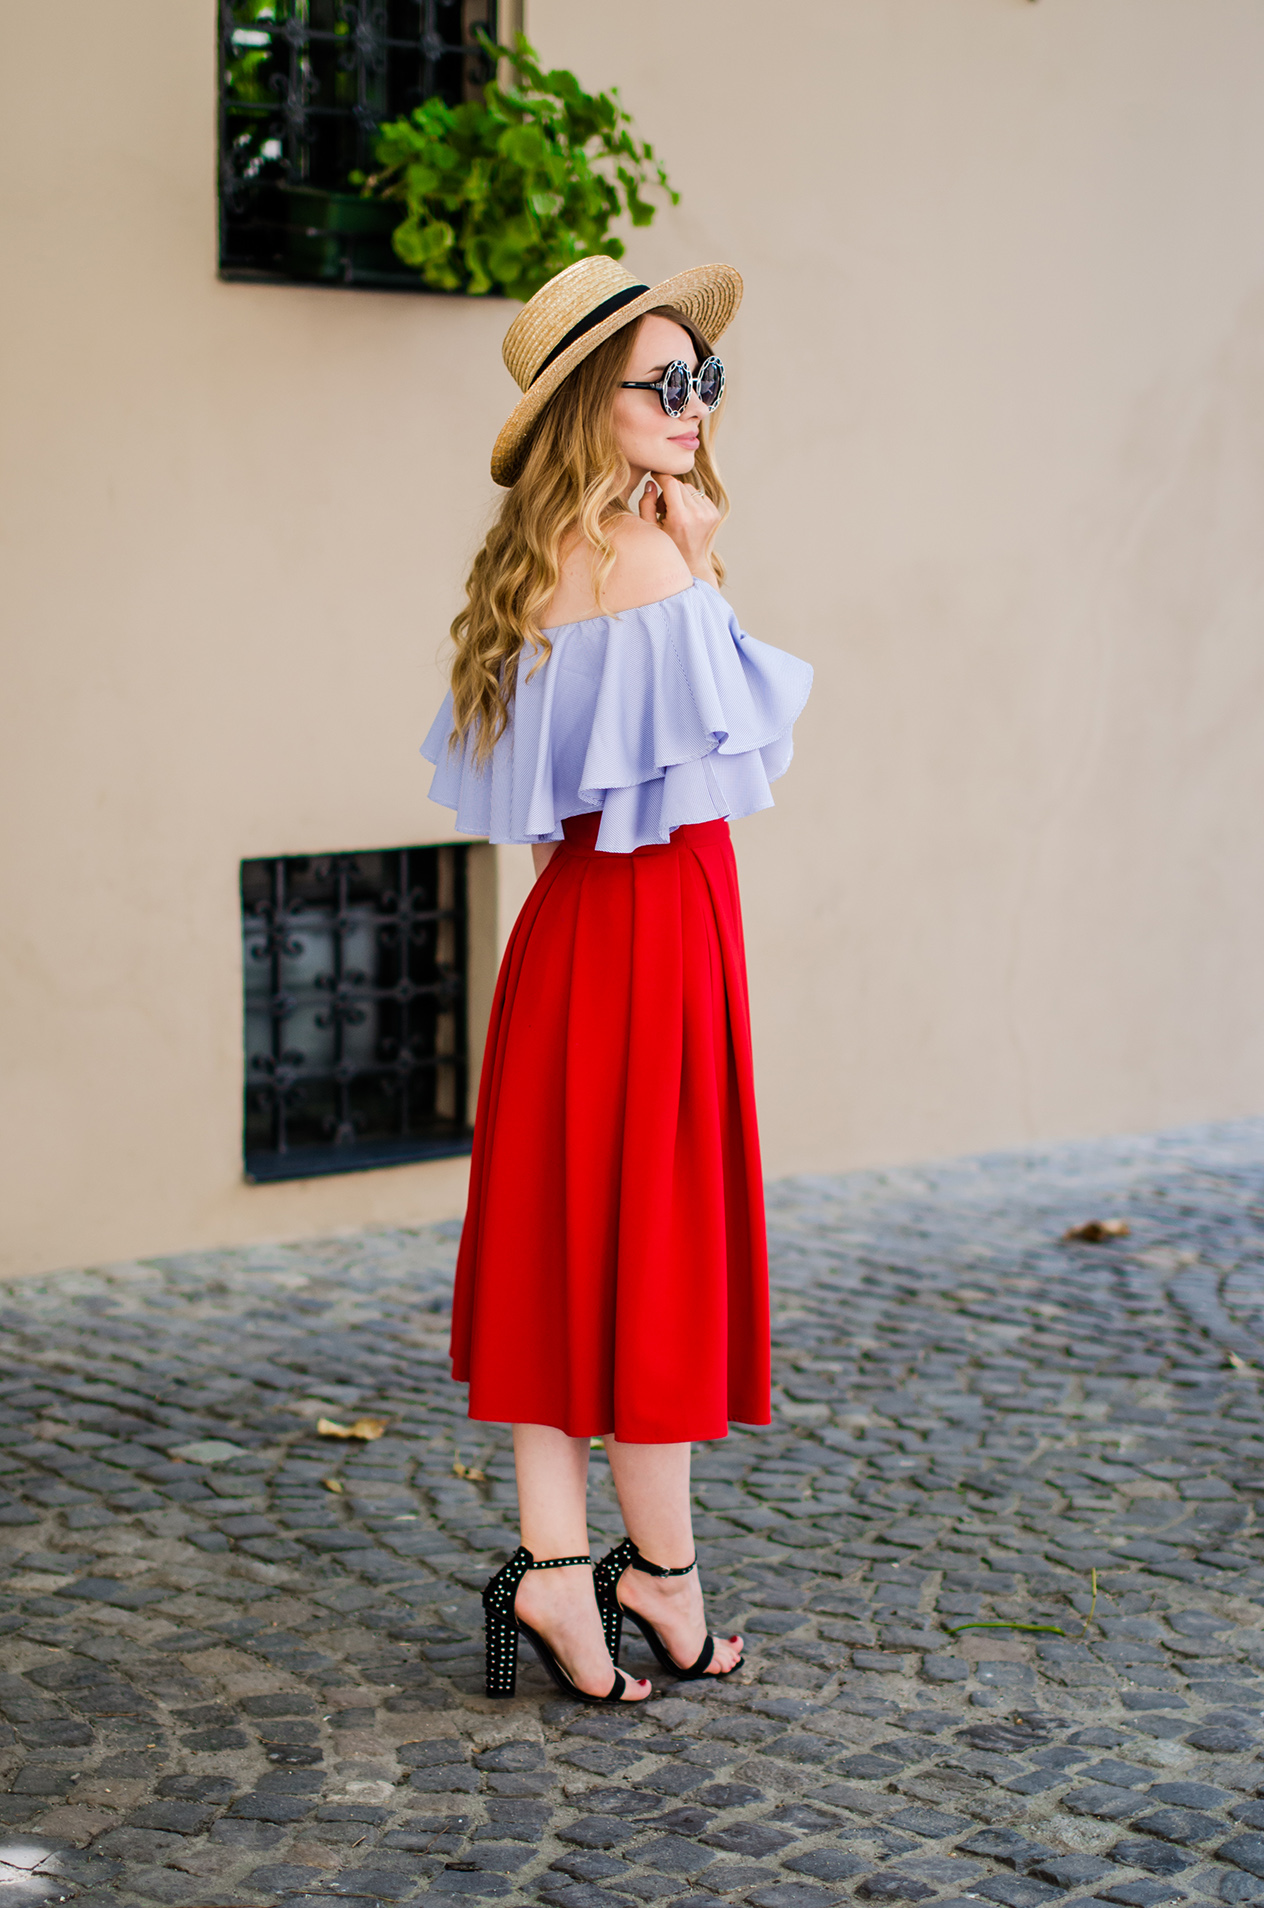 off-shoulder-blouse-red-midi-skirt-straw-hat (2)